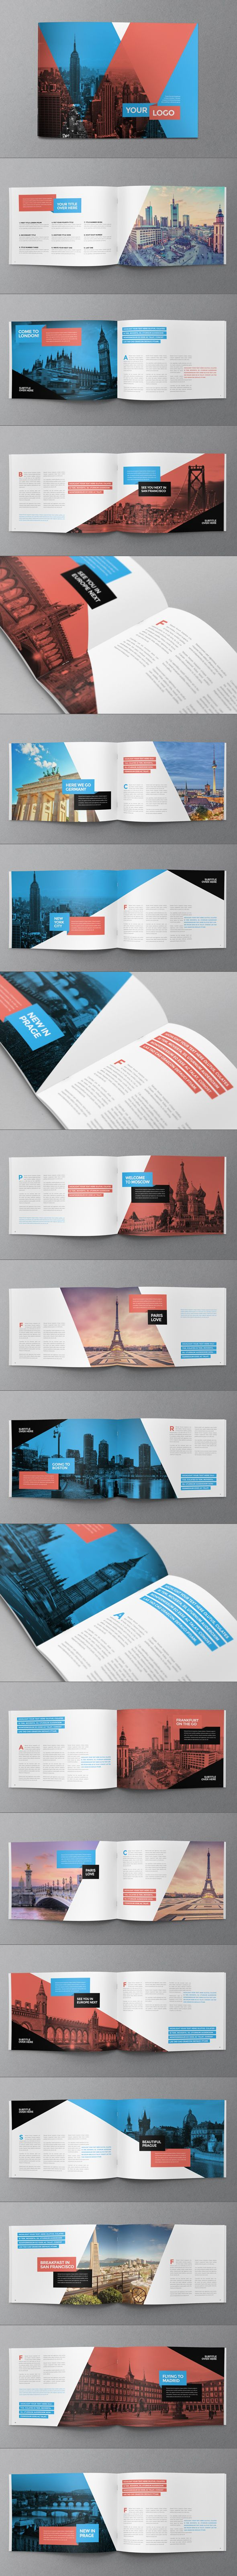 Modern Travel Brochure. Download here: http://graphicriver.net/item/modern-travel-brochure/8753153?ref=abradesign #brochure #design